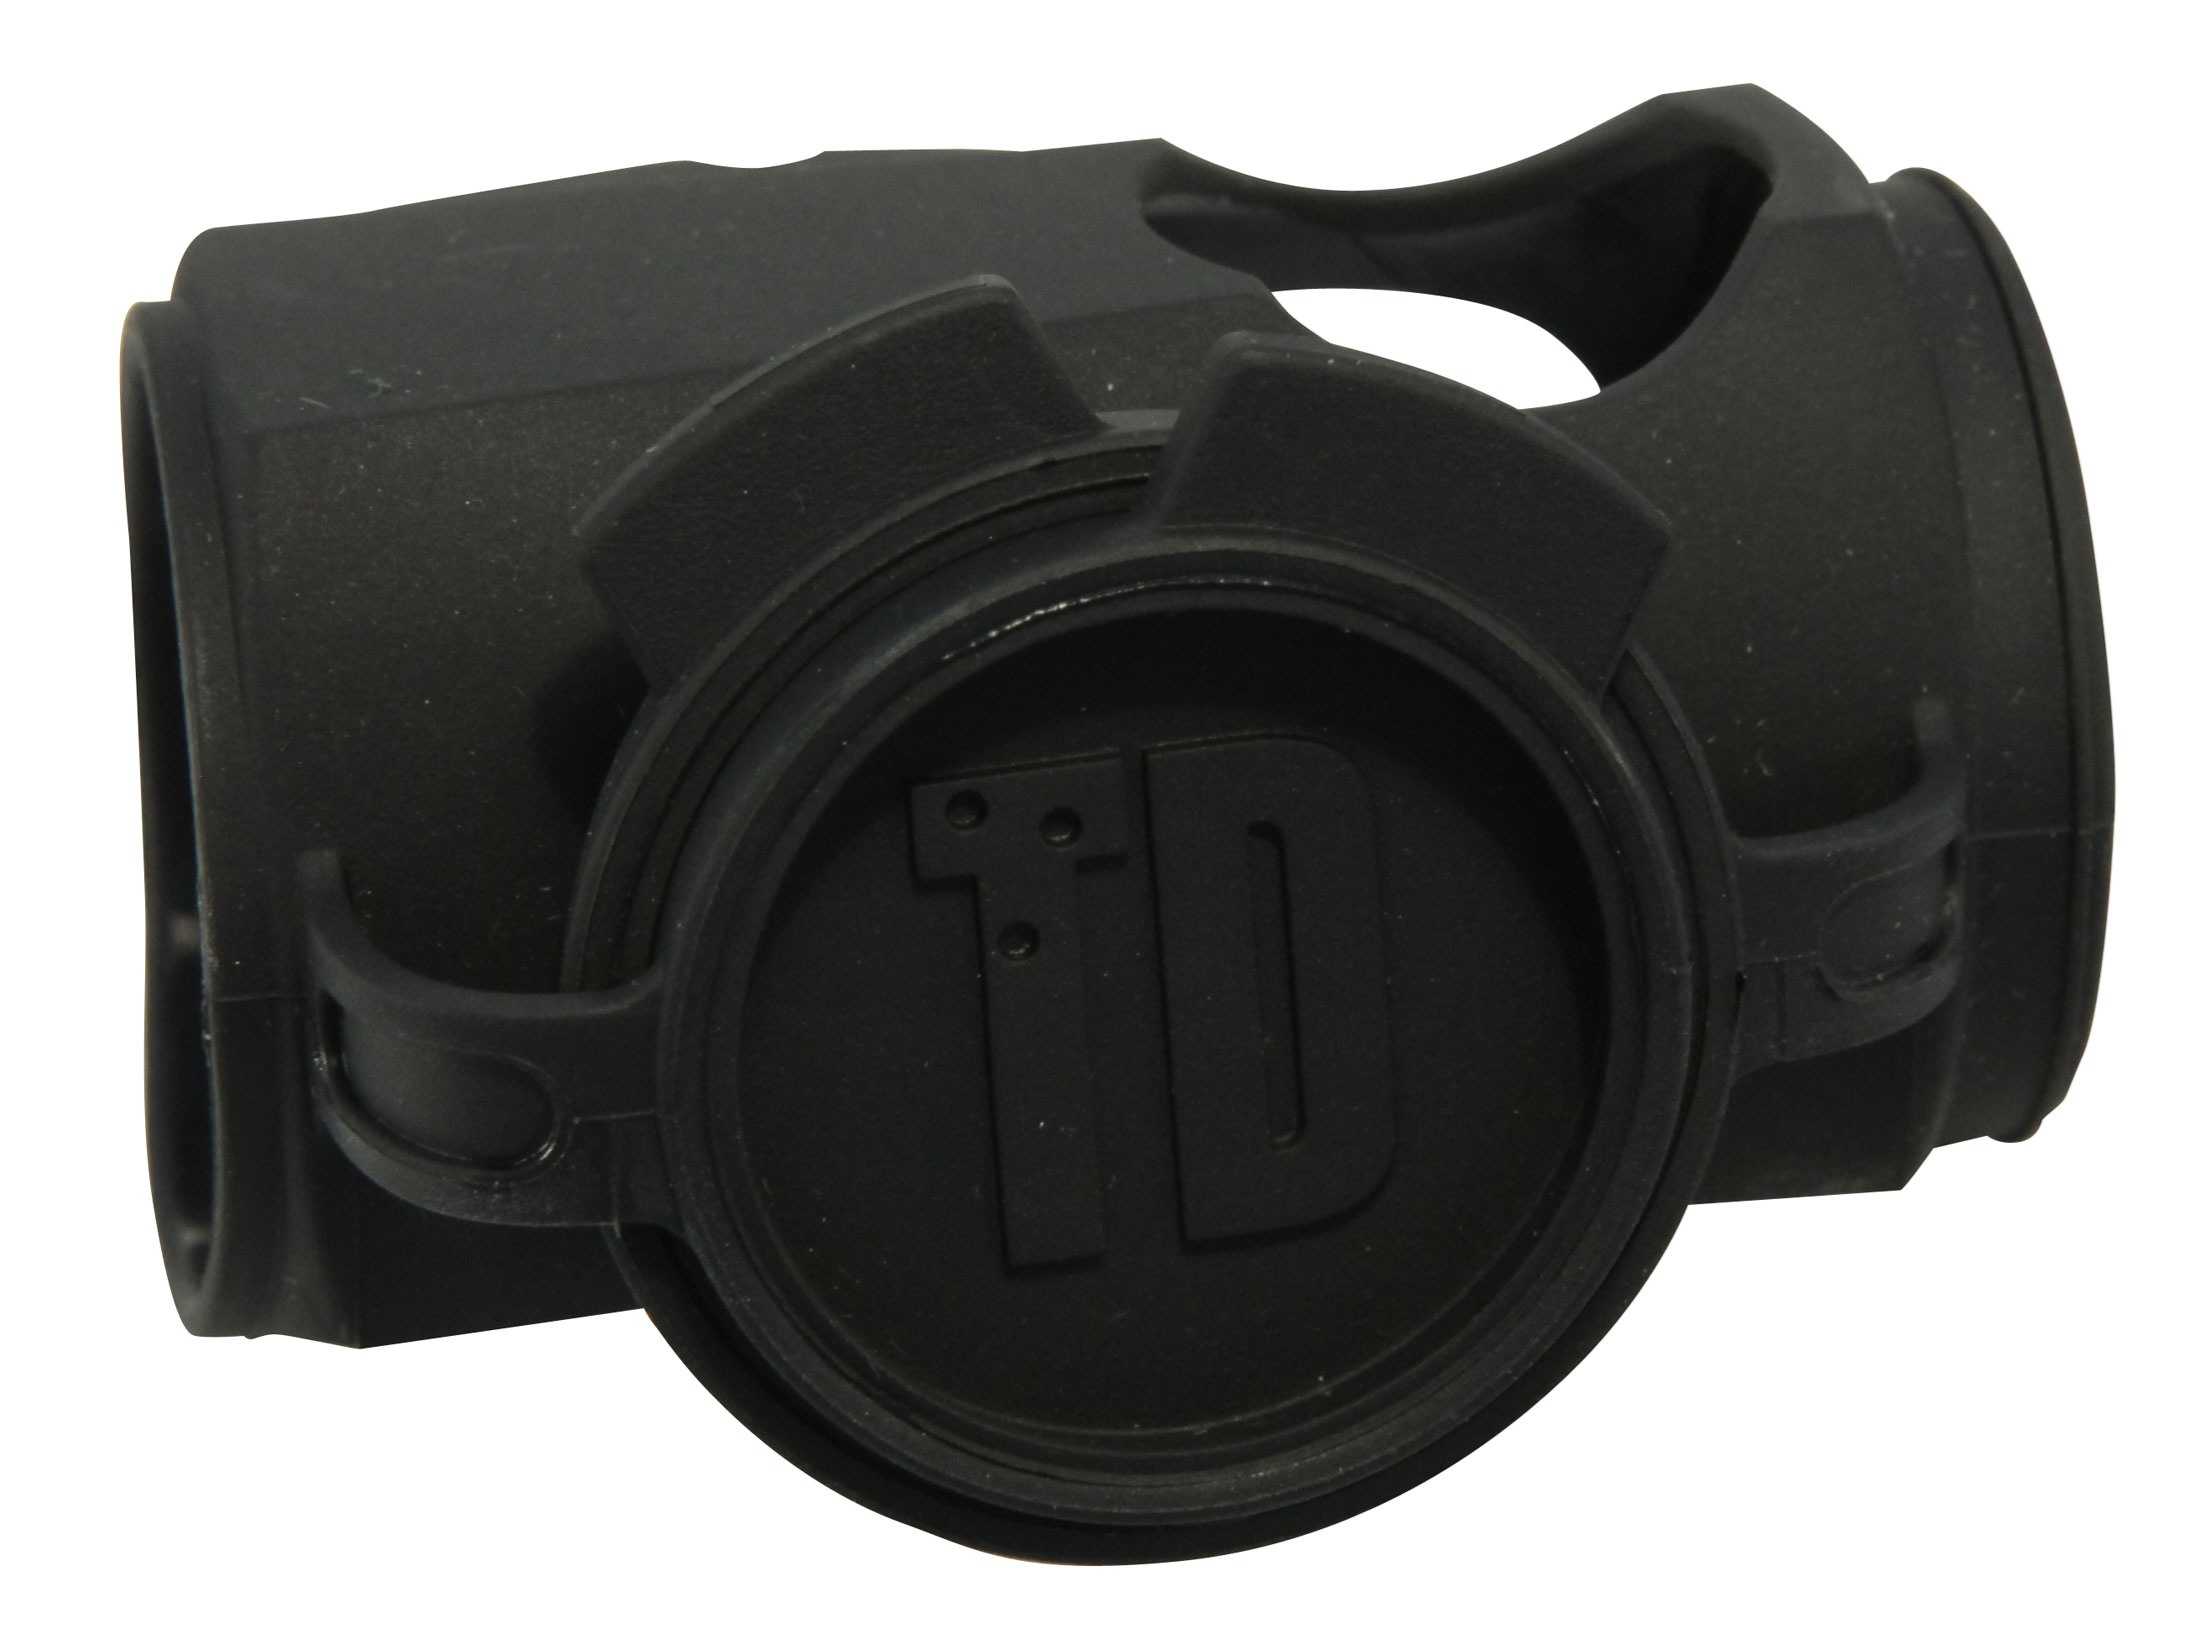 Tango Down IO Cover for Aimpoint T-1 and H-1 Micro Red Dot BLACK